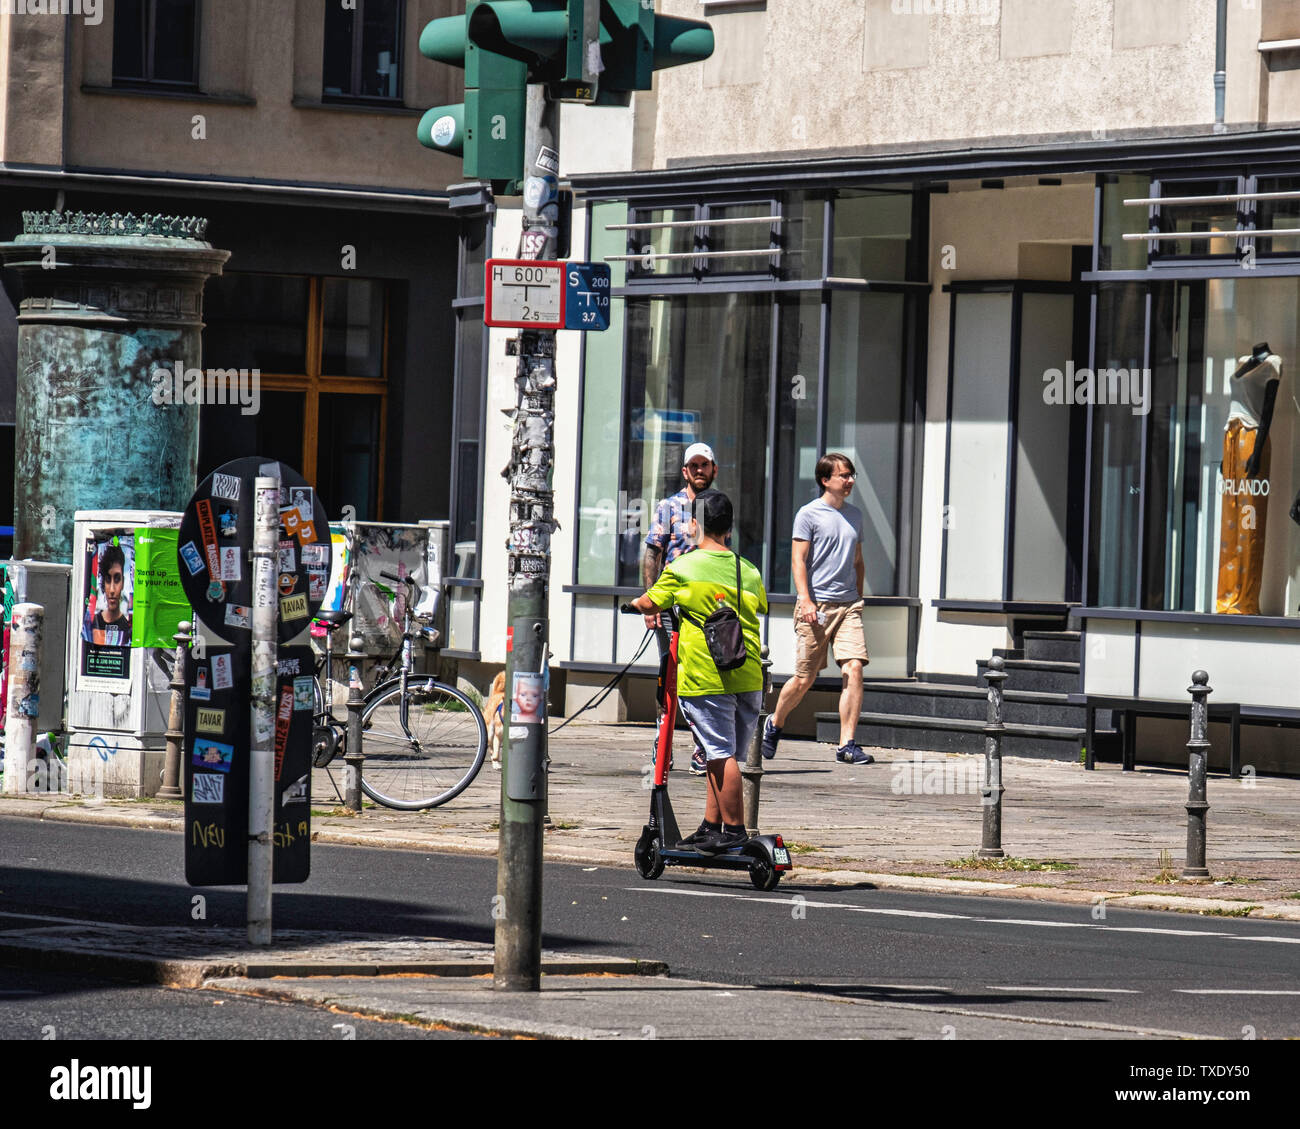 Germany, Berlin, Mitte. 24th June 2019. German parliament legalises electric scooters. E-scooters have recently been made legal for street use in Germany and are making an appearance on city streets. Use is restricted to bike lanes & streets. The maximun speed allowed is 20kpm and under- fourteens are not permitted to use the scooters. Stock Photo